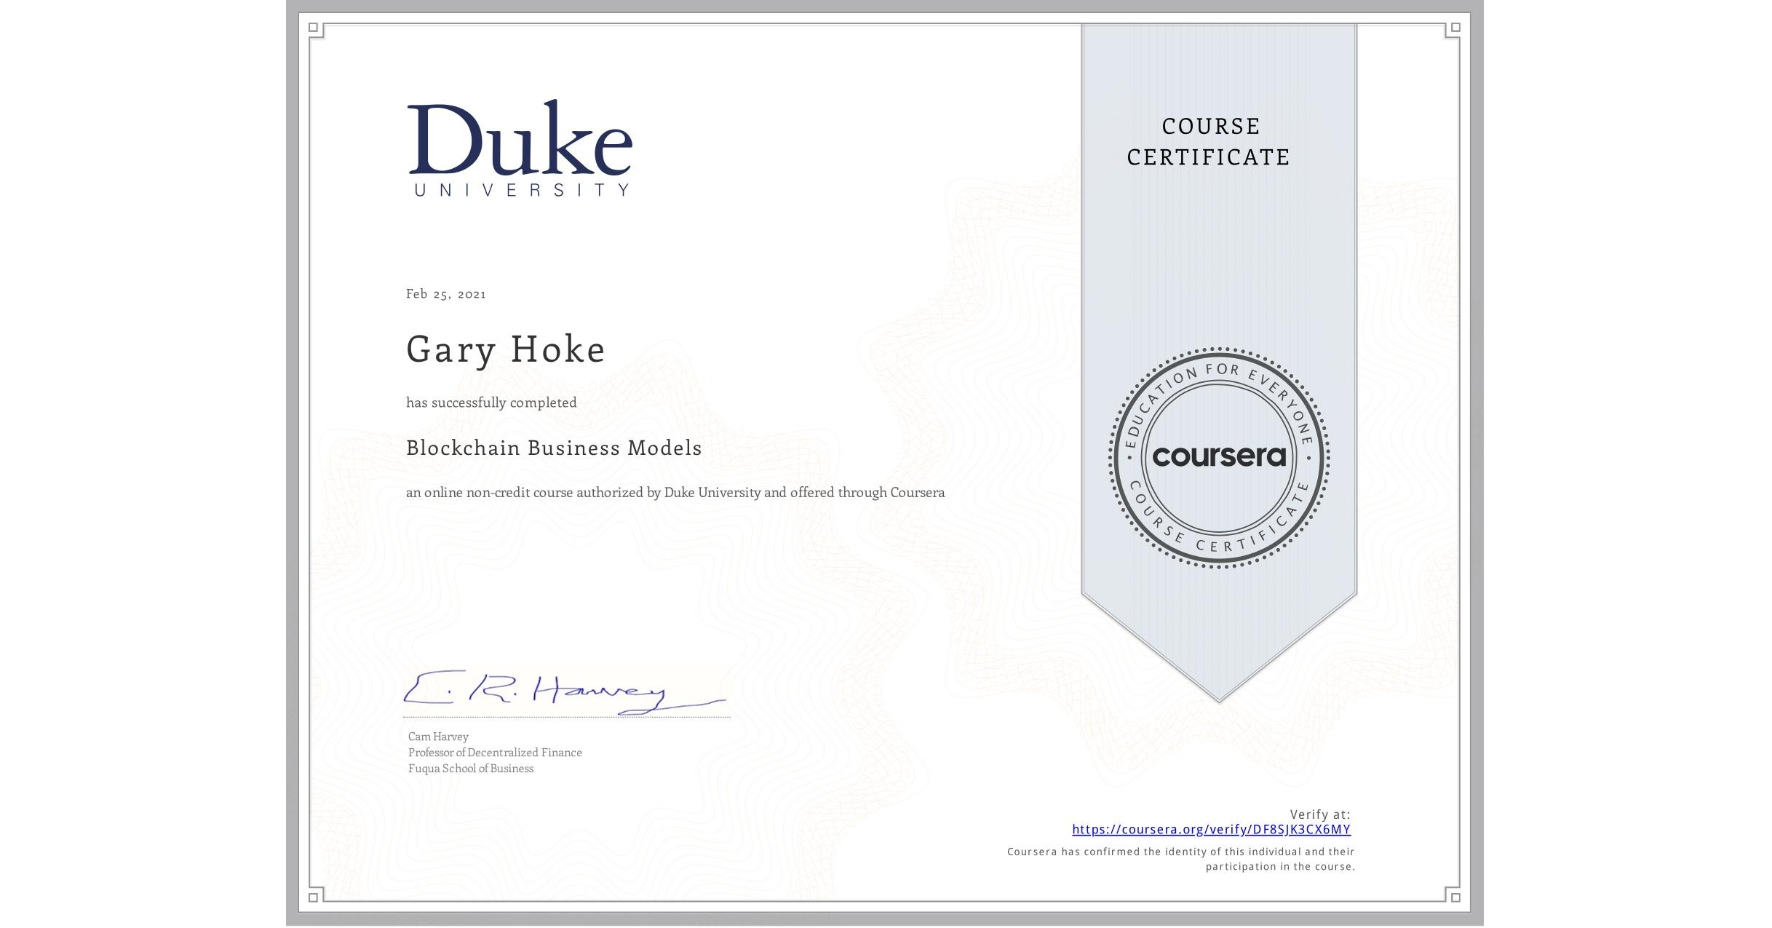 View certificate for Gary Hoke, Blockchain Business Models, an online non-credit course authorized by Duke University and offered through Coursera